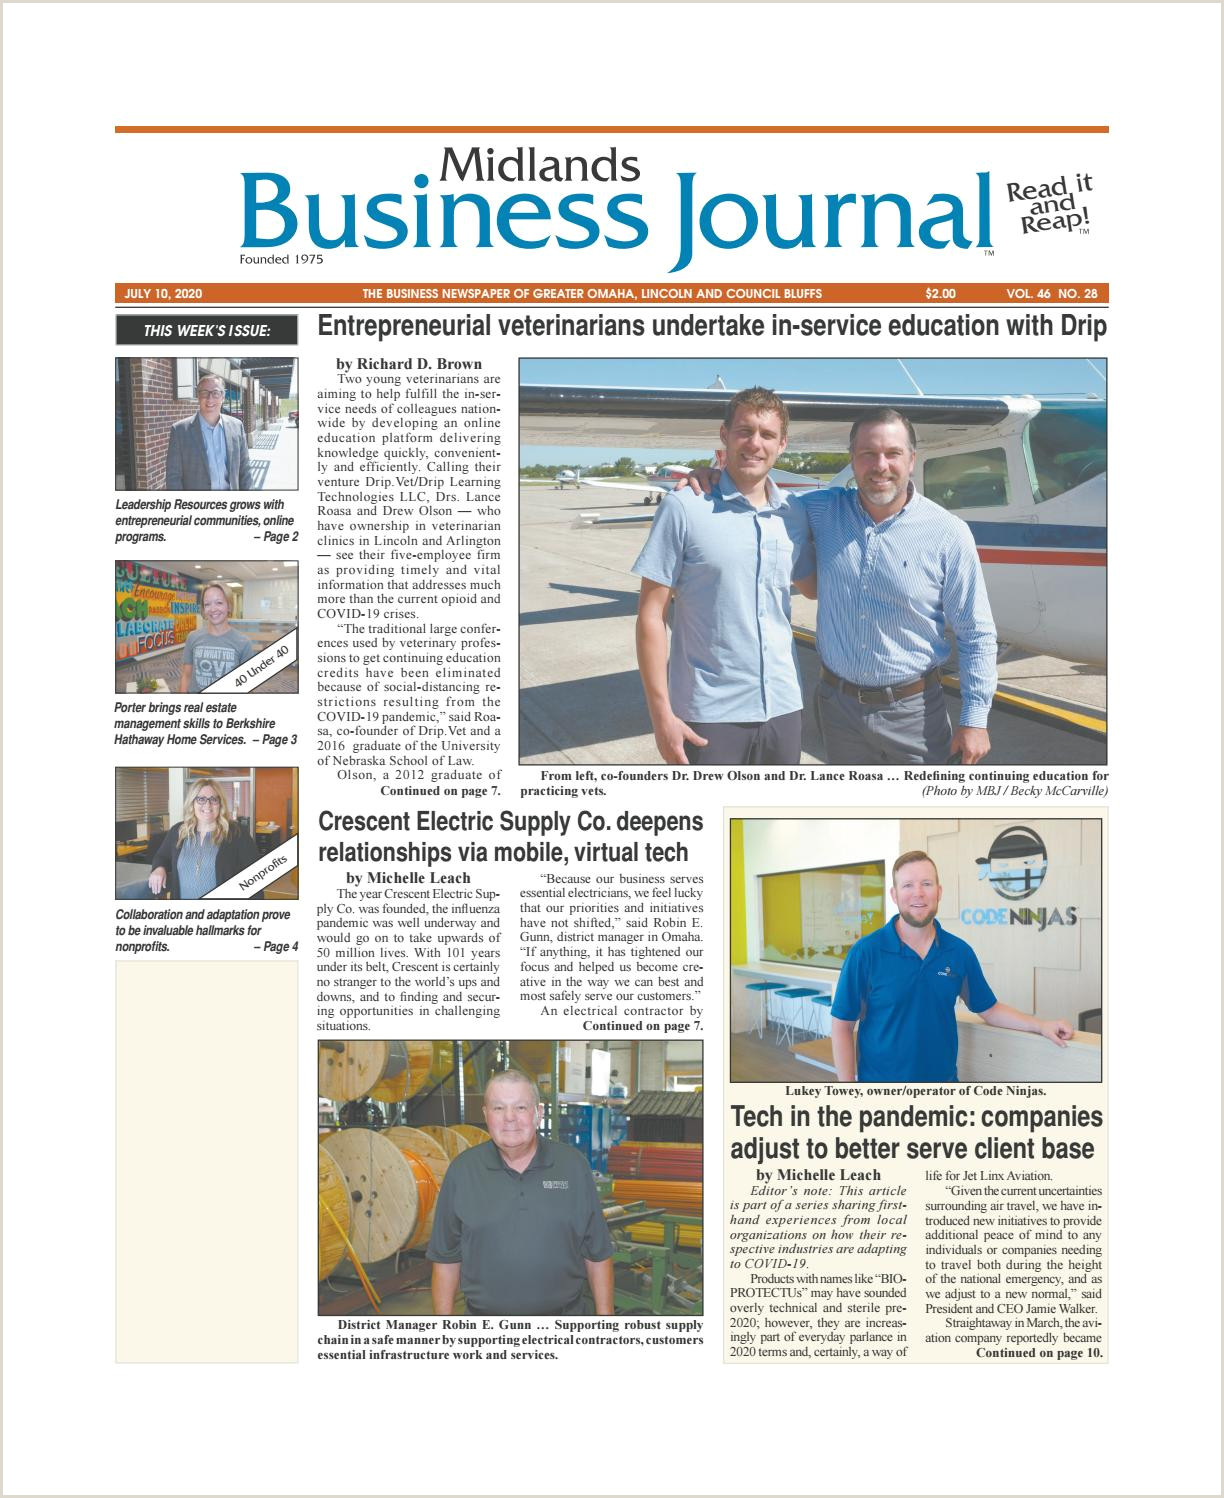 Best Business Cards In Omaha Midlands Business Journal July 10 2020 Vol 46 No 28 Issue